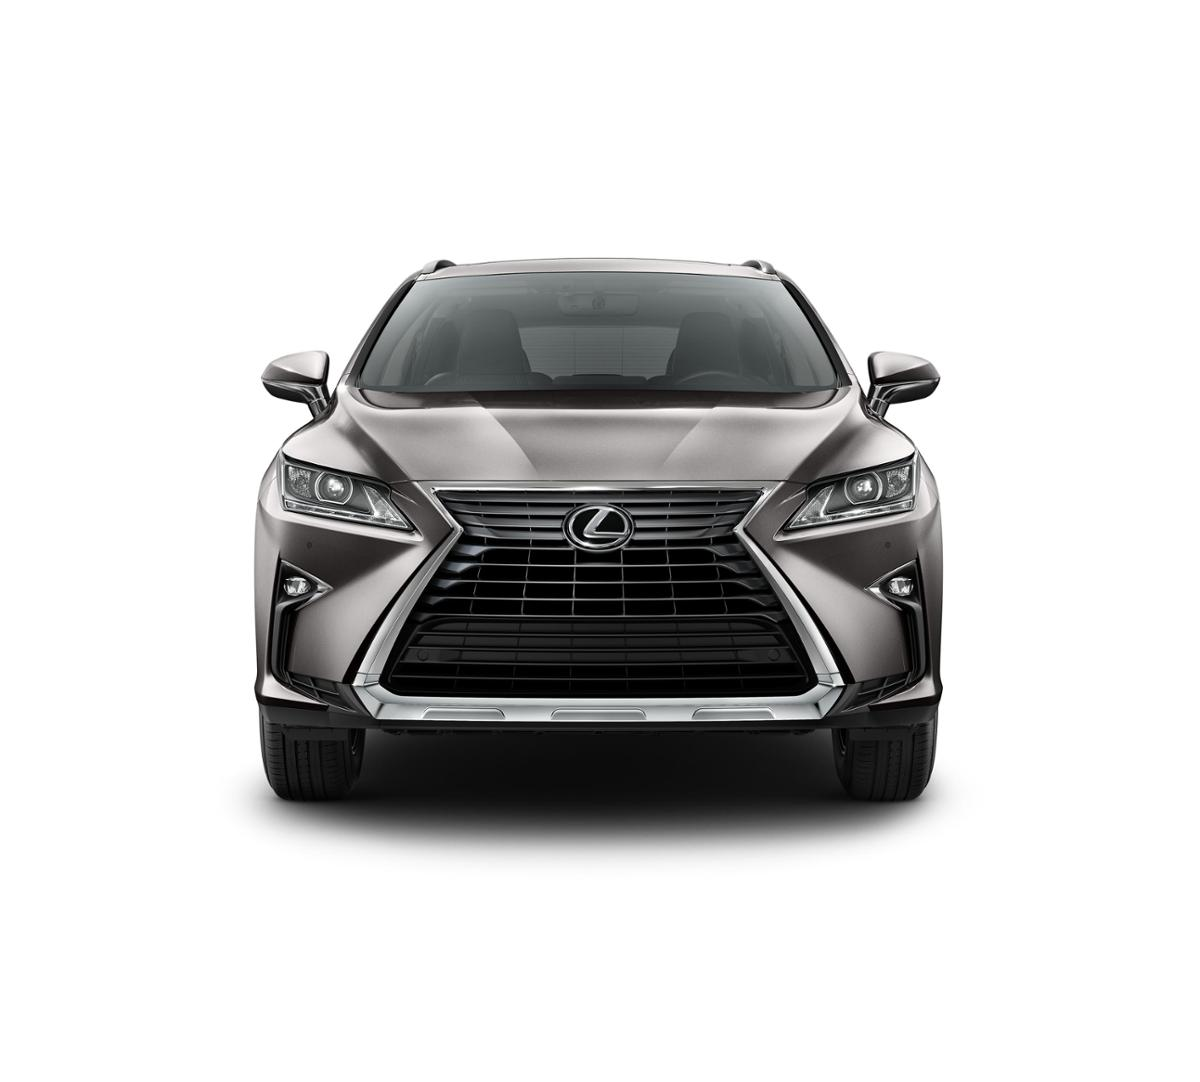 Atomic Silver 2019 Lexus RX 350: New Suv For Sale In